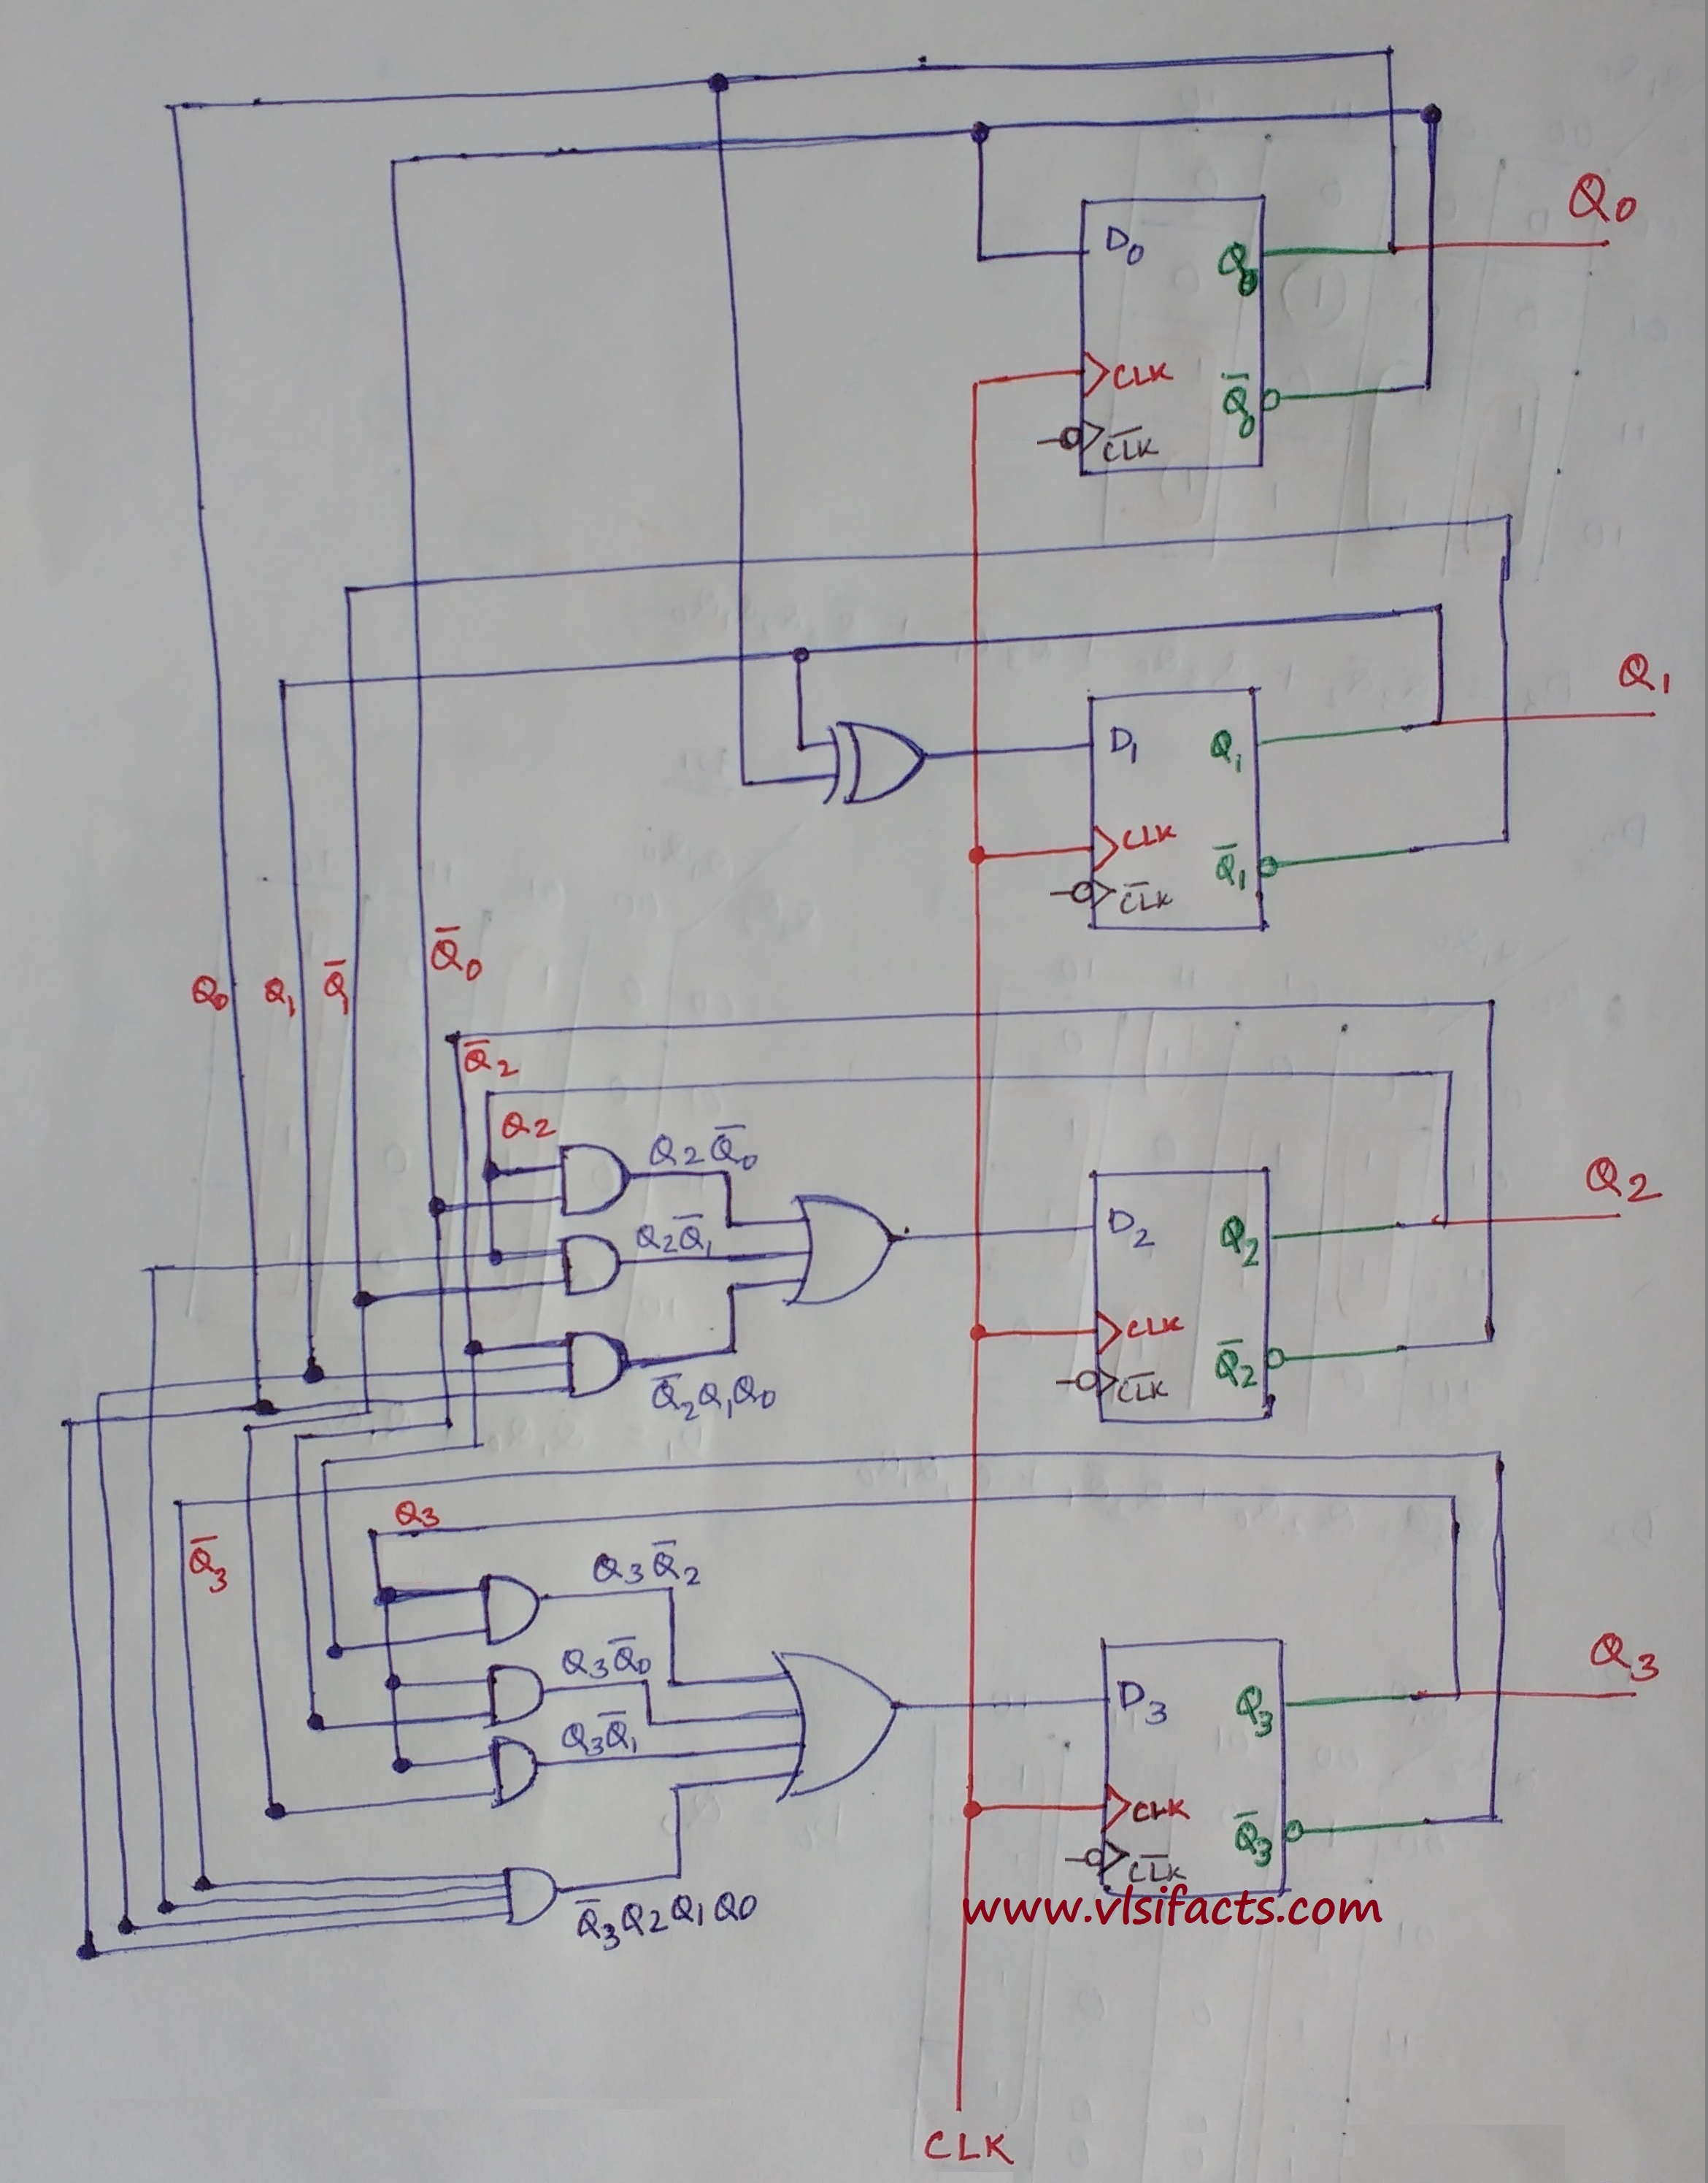 Circuit Design Of A 4 Bit Binary Counter Using D Flip Flops Vlsifacts Logic Diagram And Truth Table Final Vlsif